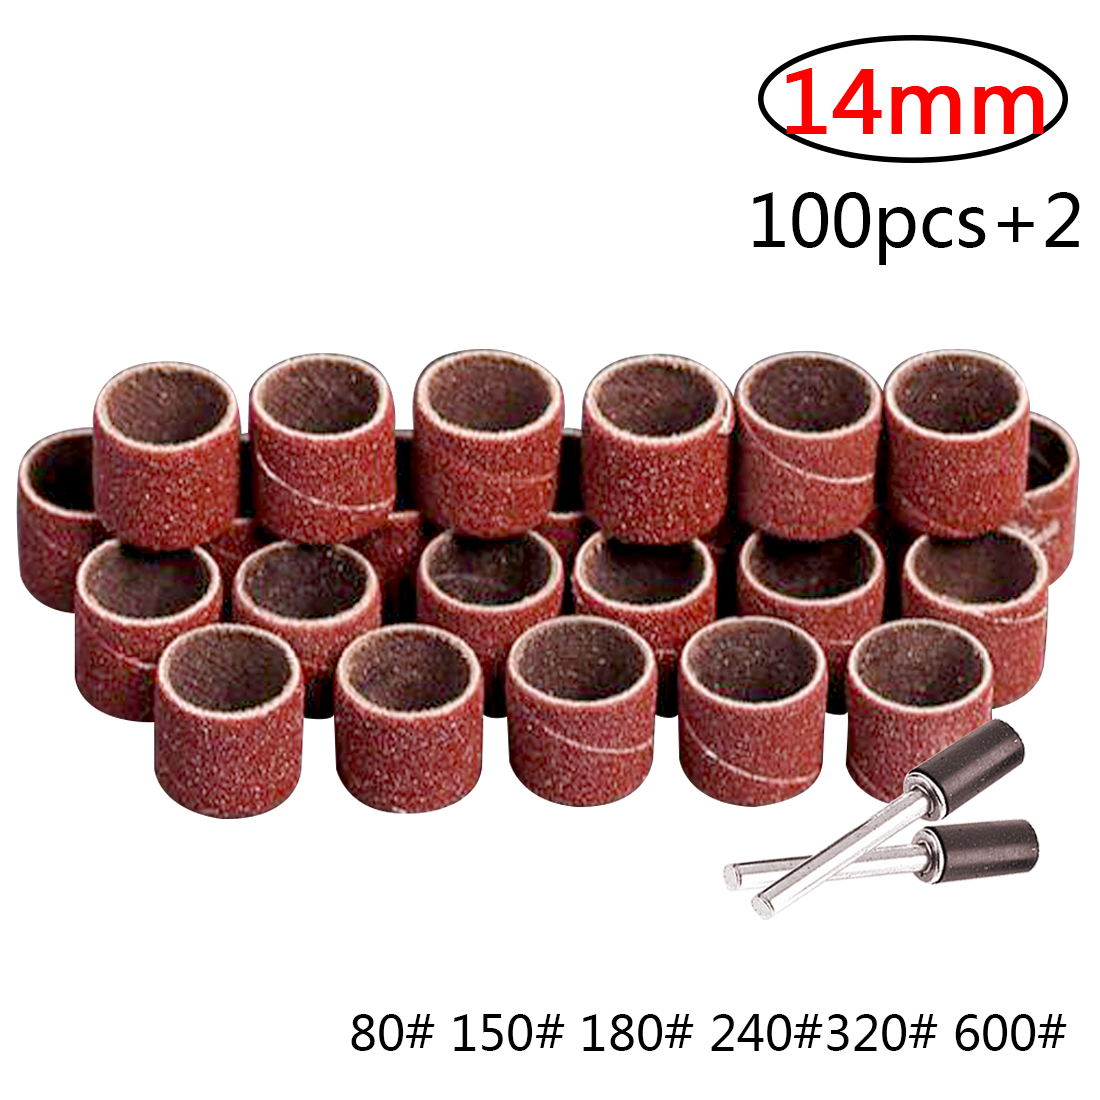 100pcs Sanding Band Drum Sandpaper +2pcs Mandrel Grinding Tool For Sand Shape Groove Wood Fiberglass Dremel Rotary Tool